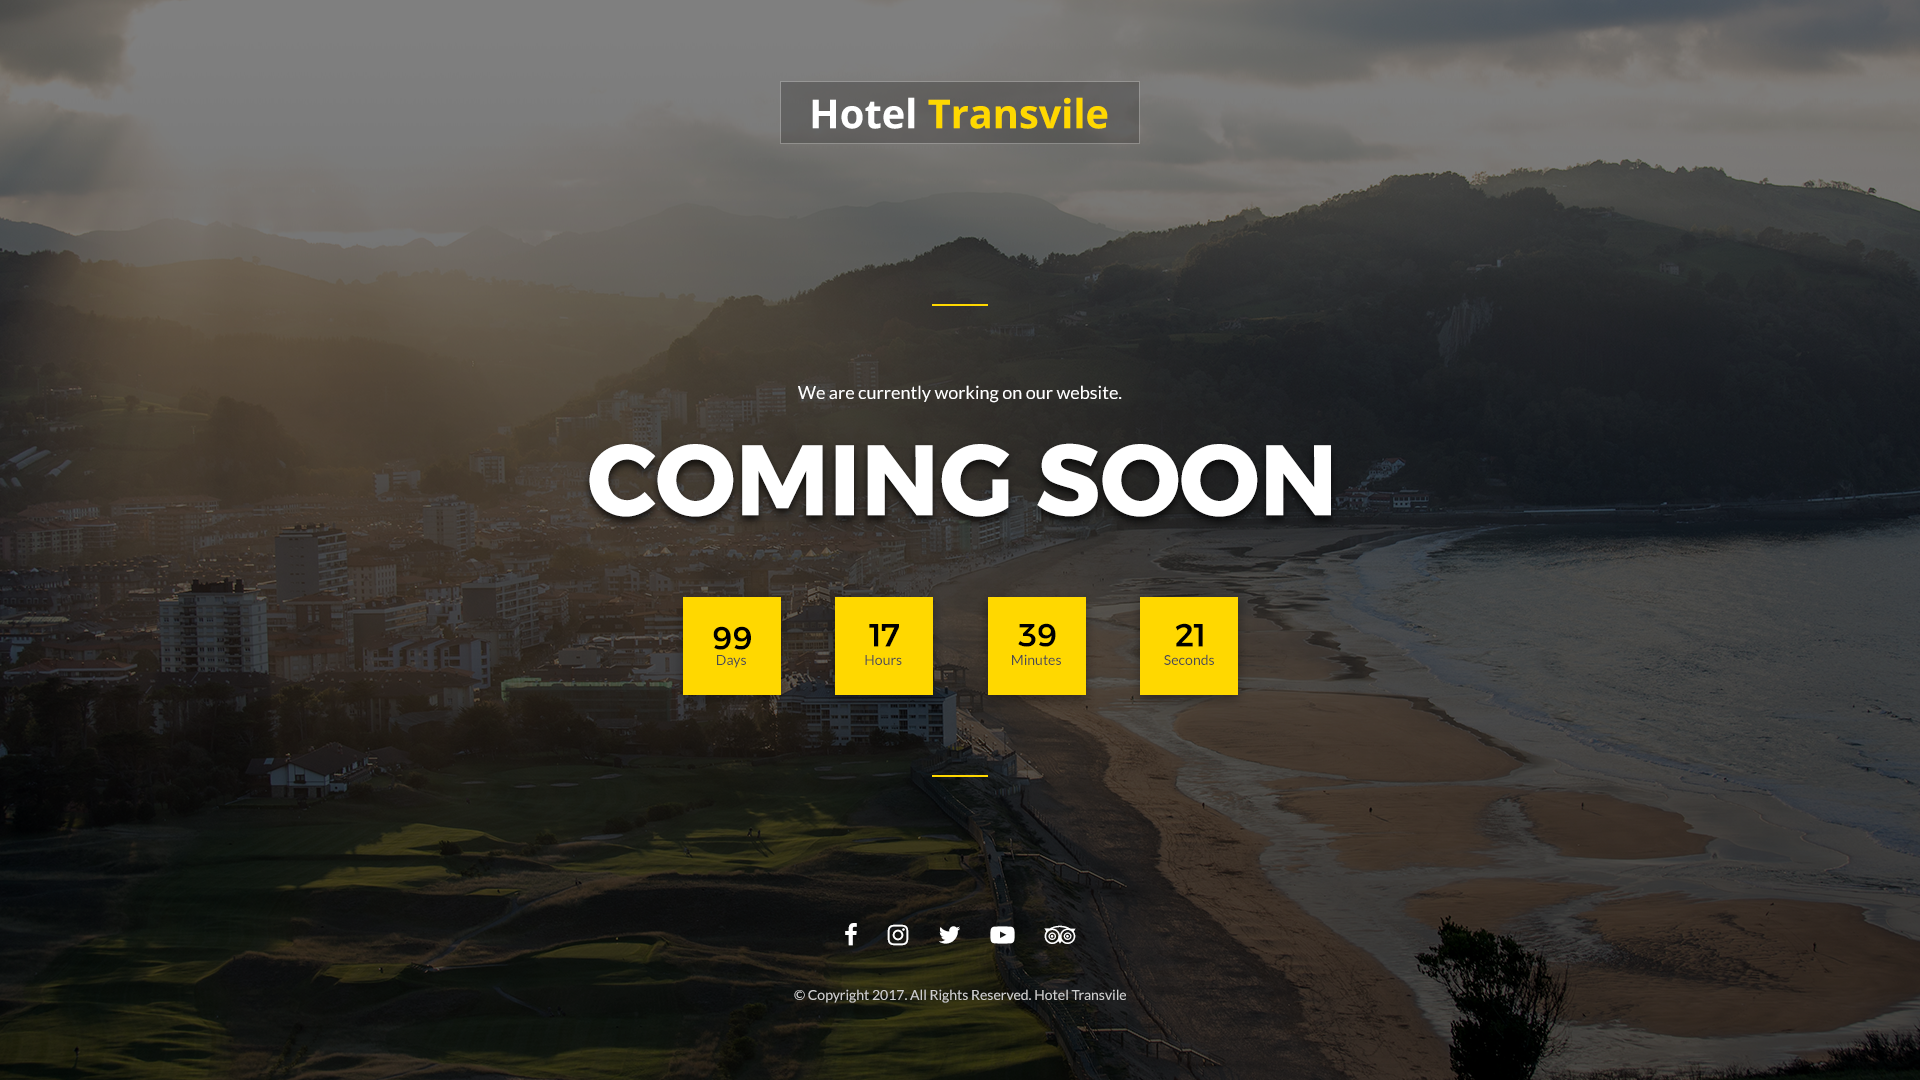 Transvile Hotel PSD Template by sandystha | ThemeForest